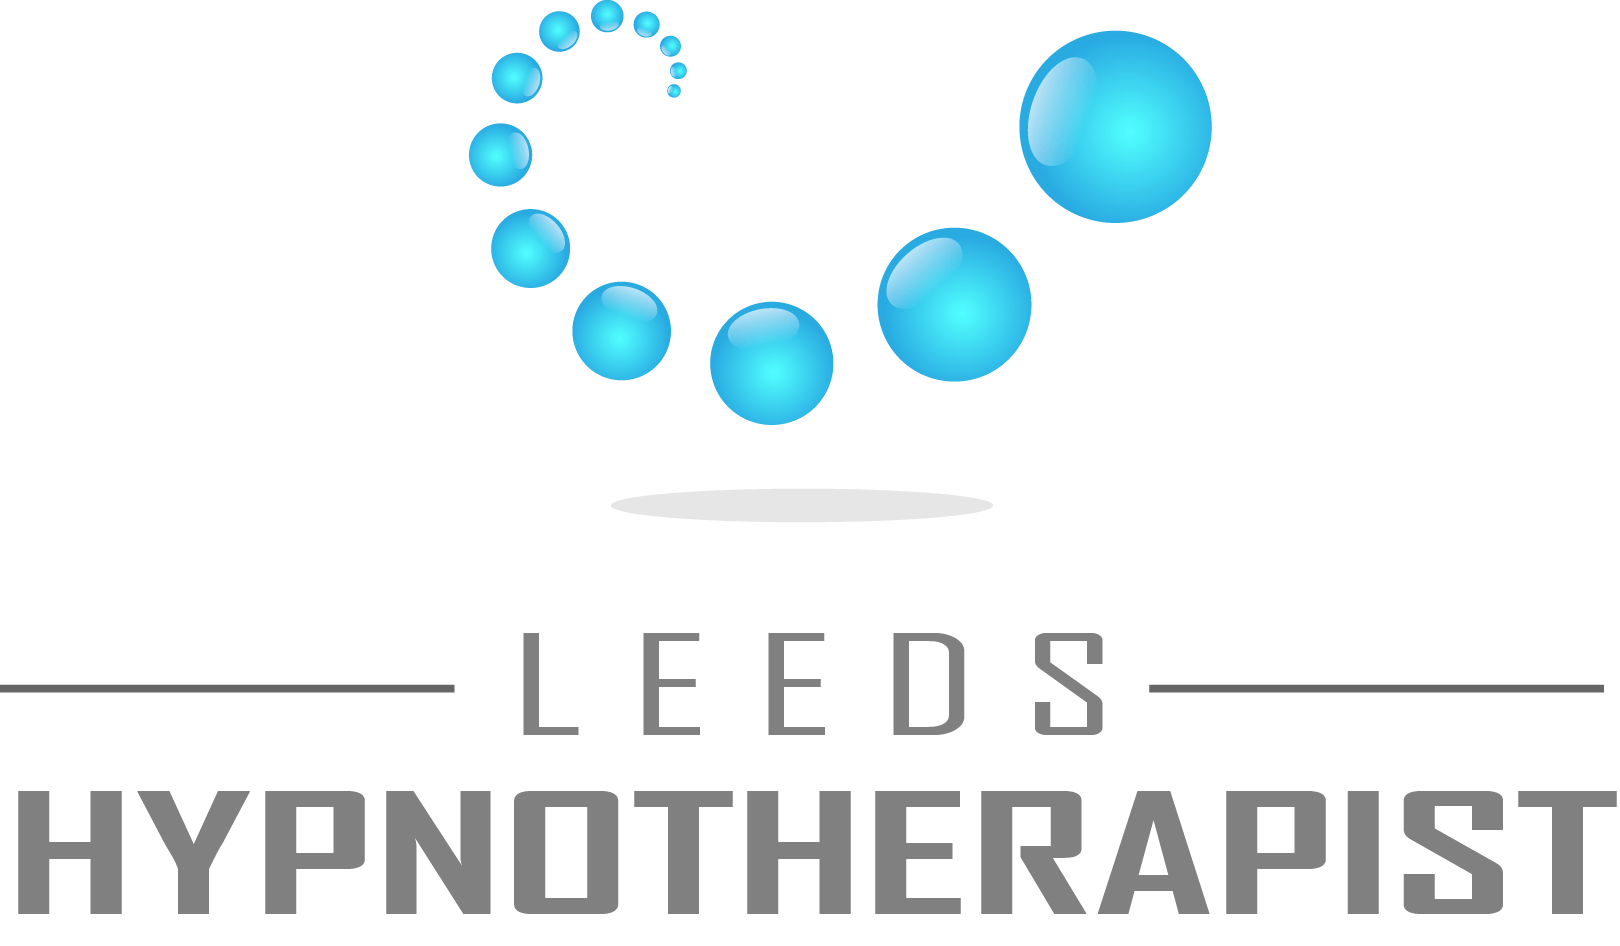 The Leeds Hypnotherapist Paul Ramsden